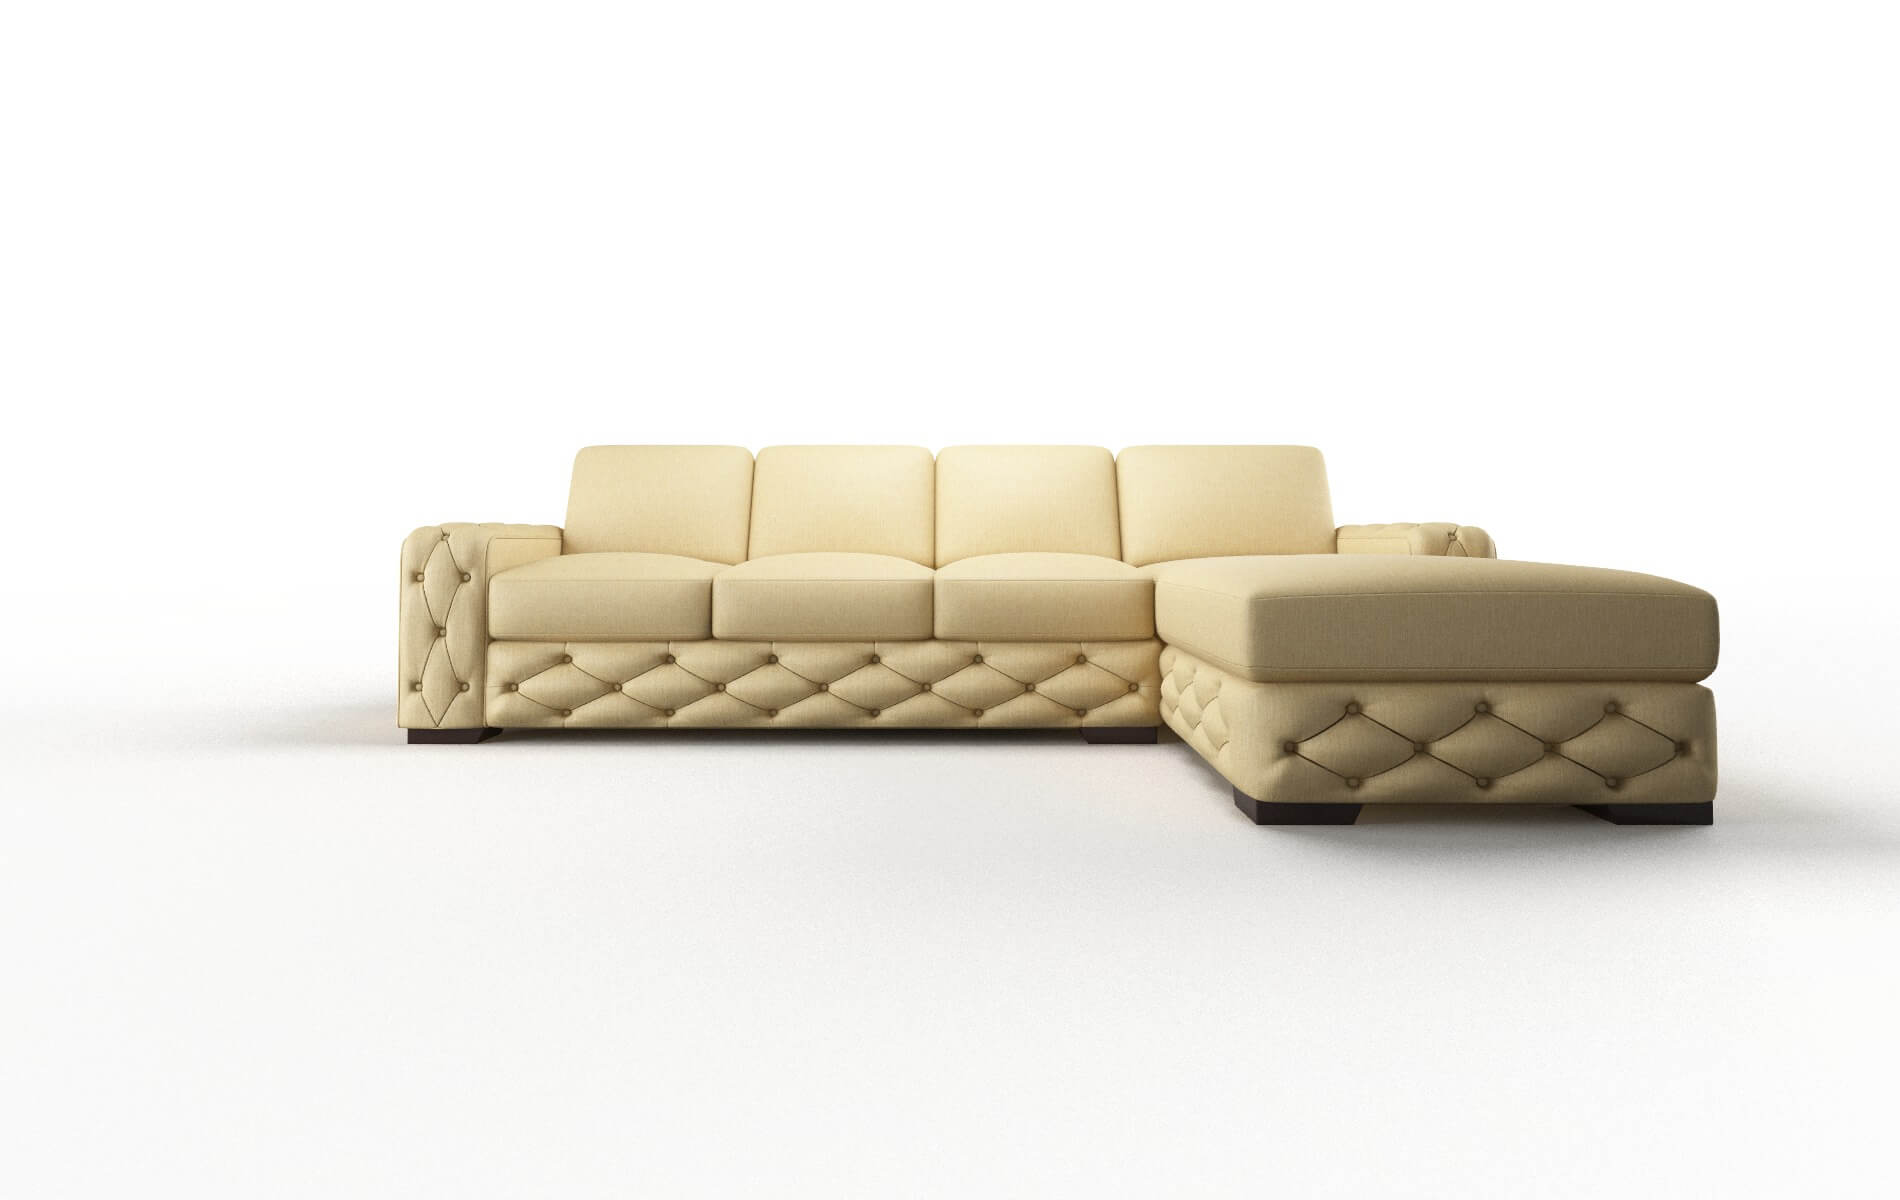 Windsor Malibu Maize Panel espresso legs